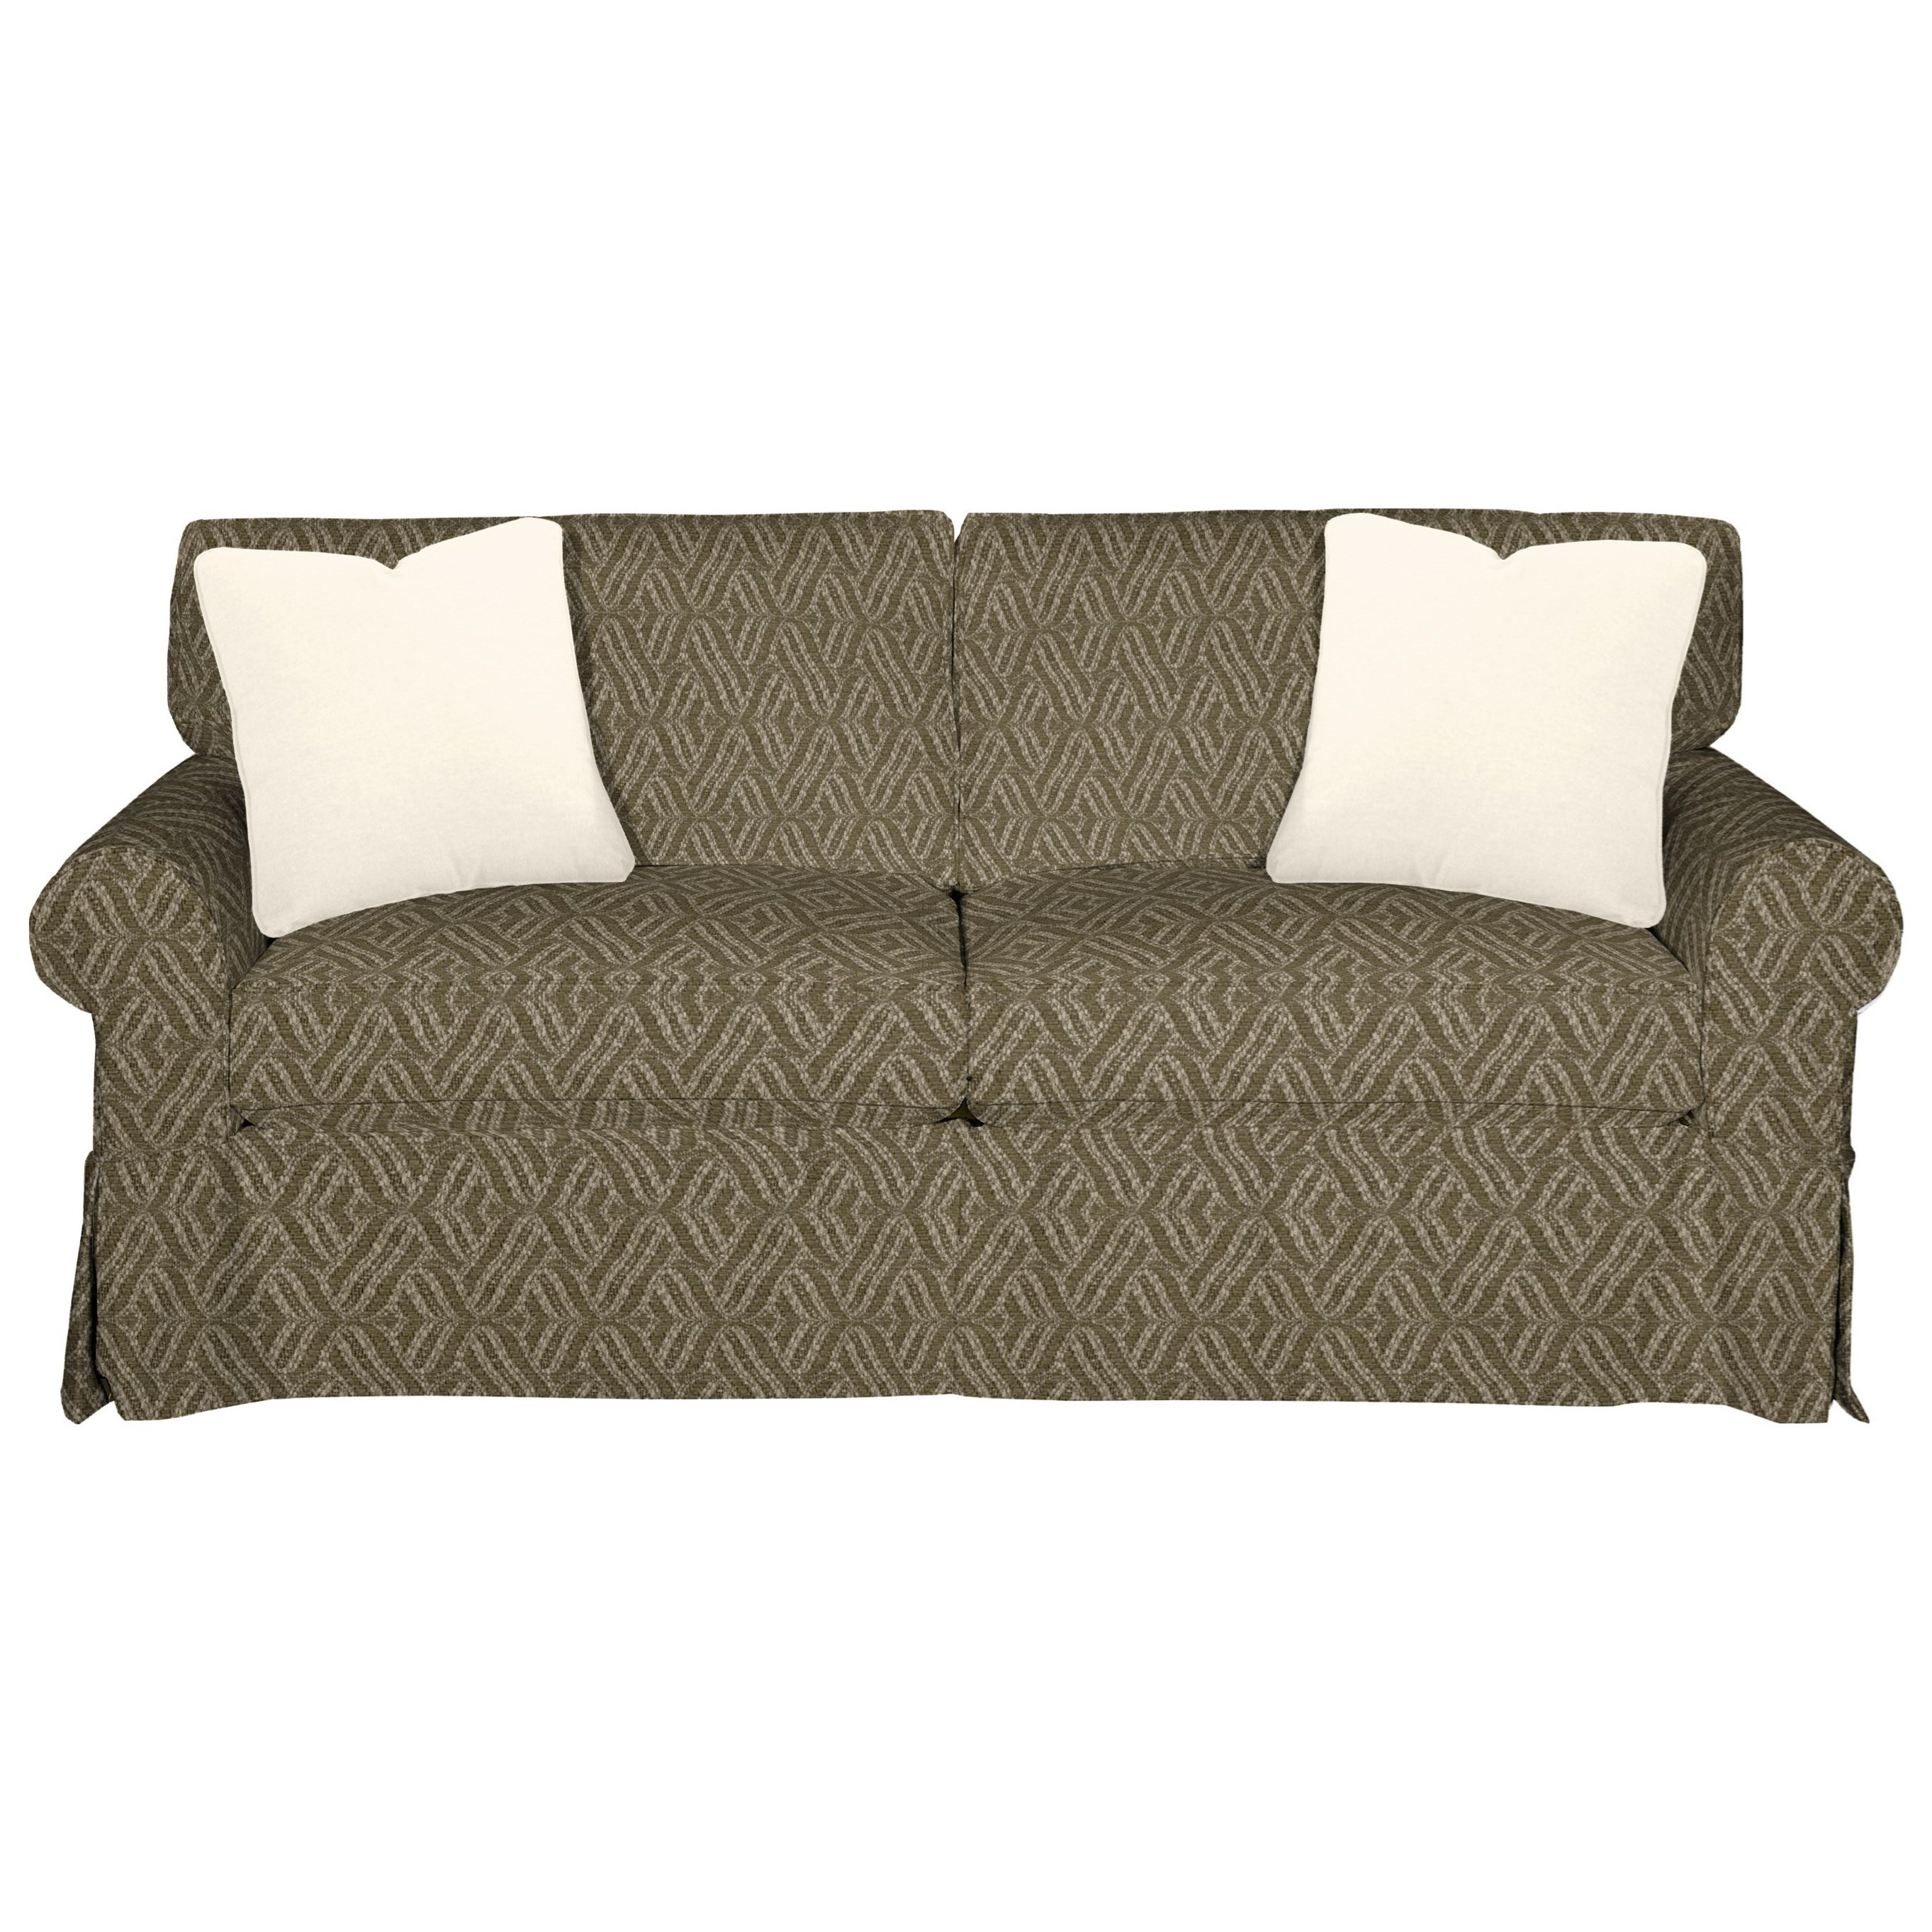 9228 Sleeper Sofa w/ Innerspring Mattress by Craftmaster at Lindy's Furniture Company